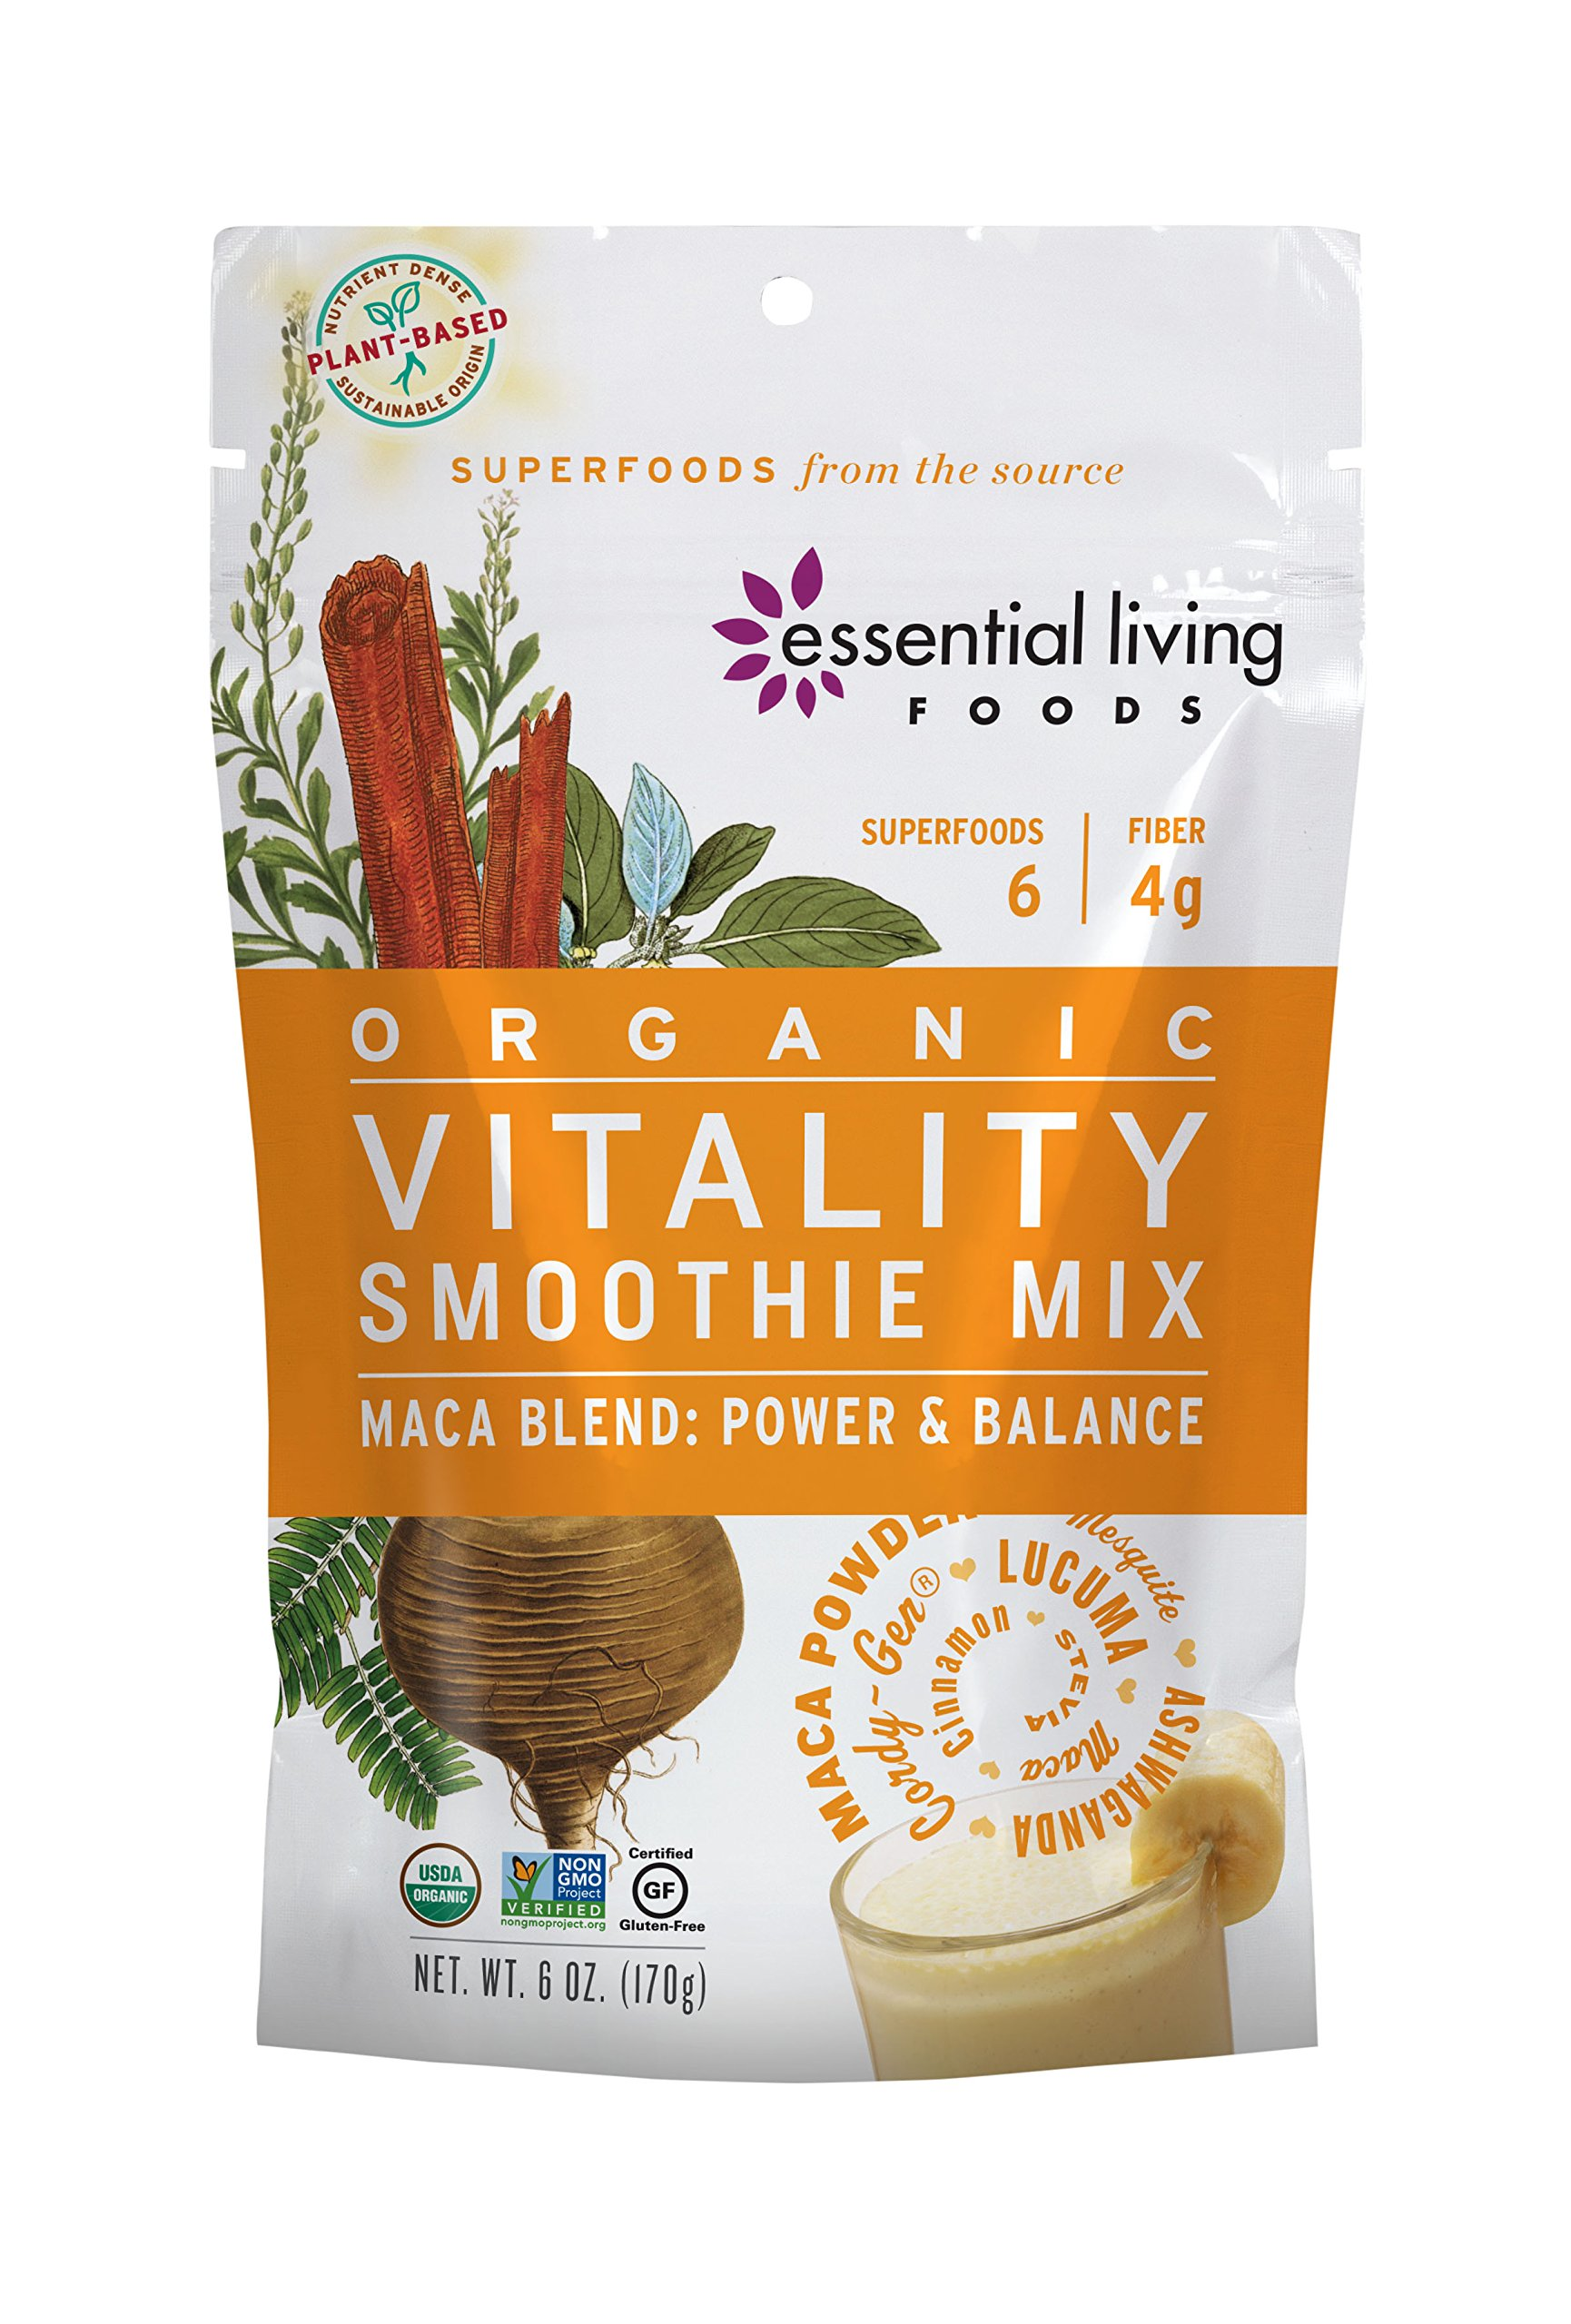 Essential Living Foods Organic Vitality Maca Blend Smoothie Mix, With Ashwagandha, Cordy-Gen, Mesquite, Lucuma, Adaptogen, Vegan, Superfood, Non-GMO, Gluten Free, Kosher, 6 Ounce Resealable Bag